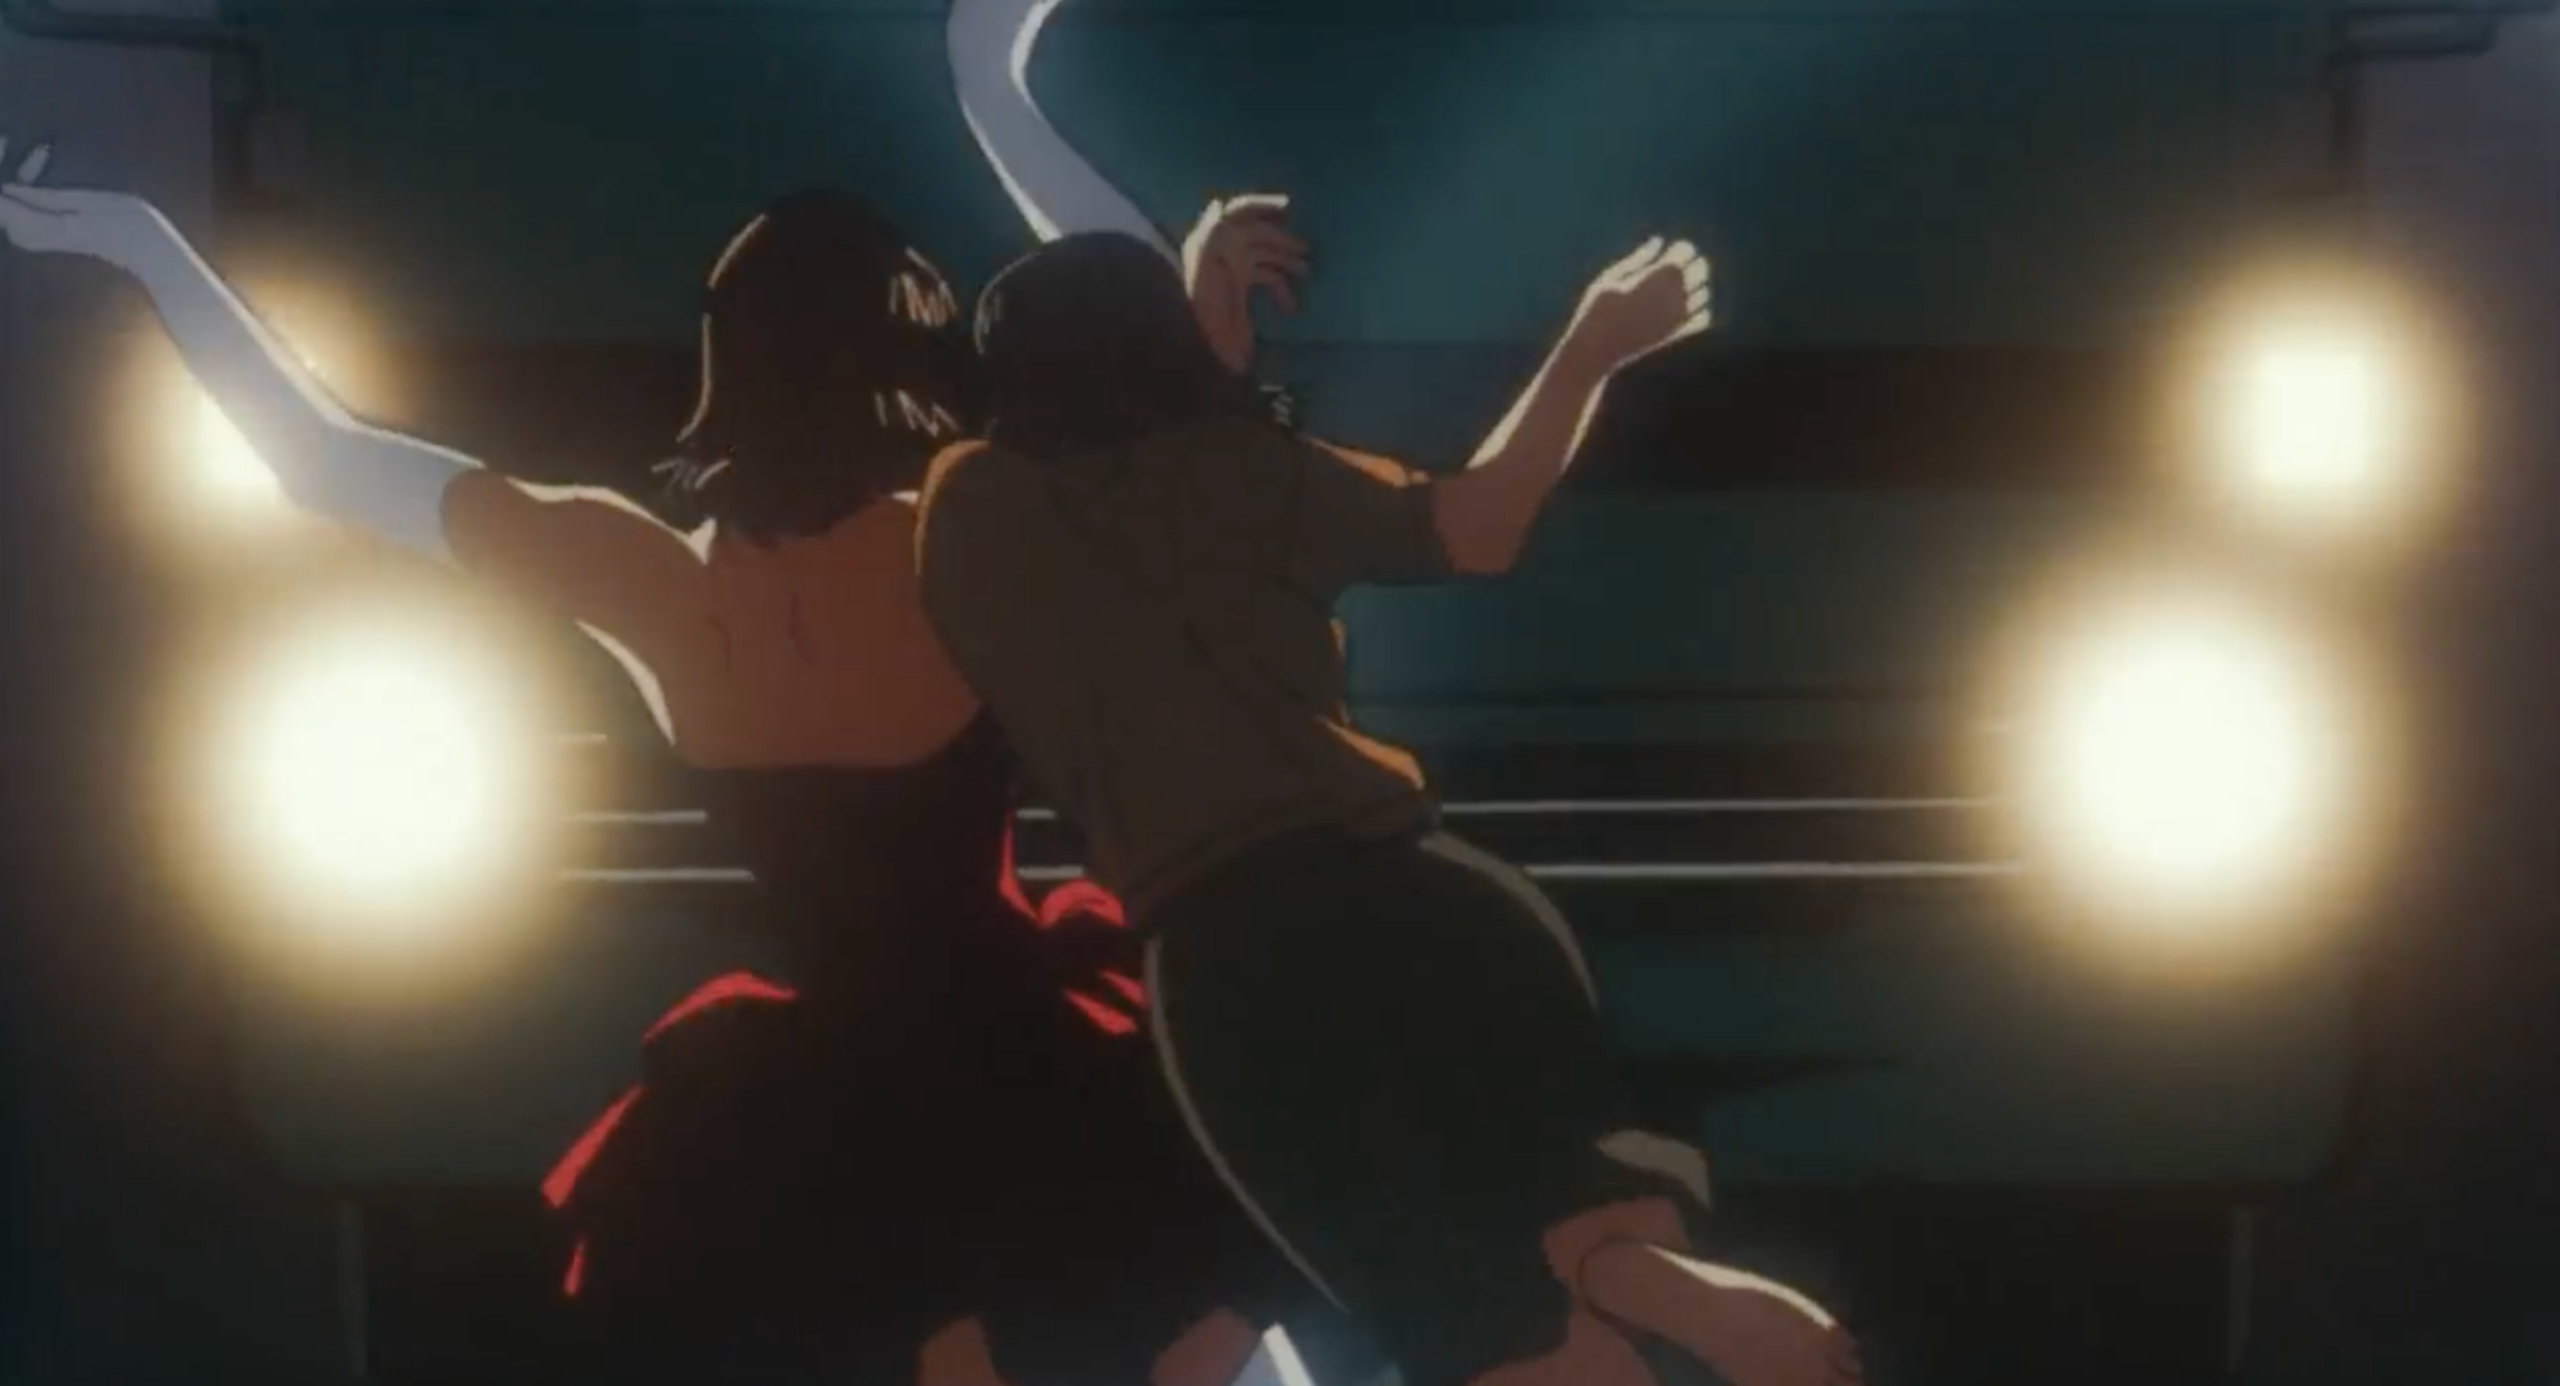 Mima pushes Rumi out of the way of an oncoming truck in Perfect Blue